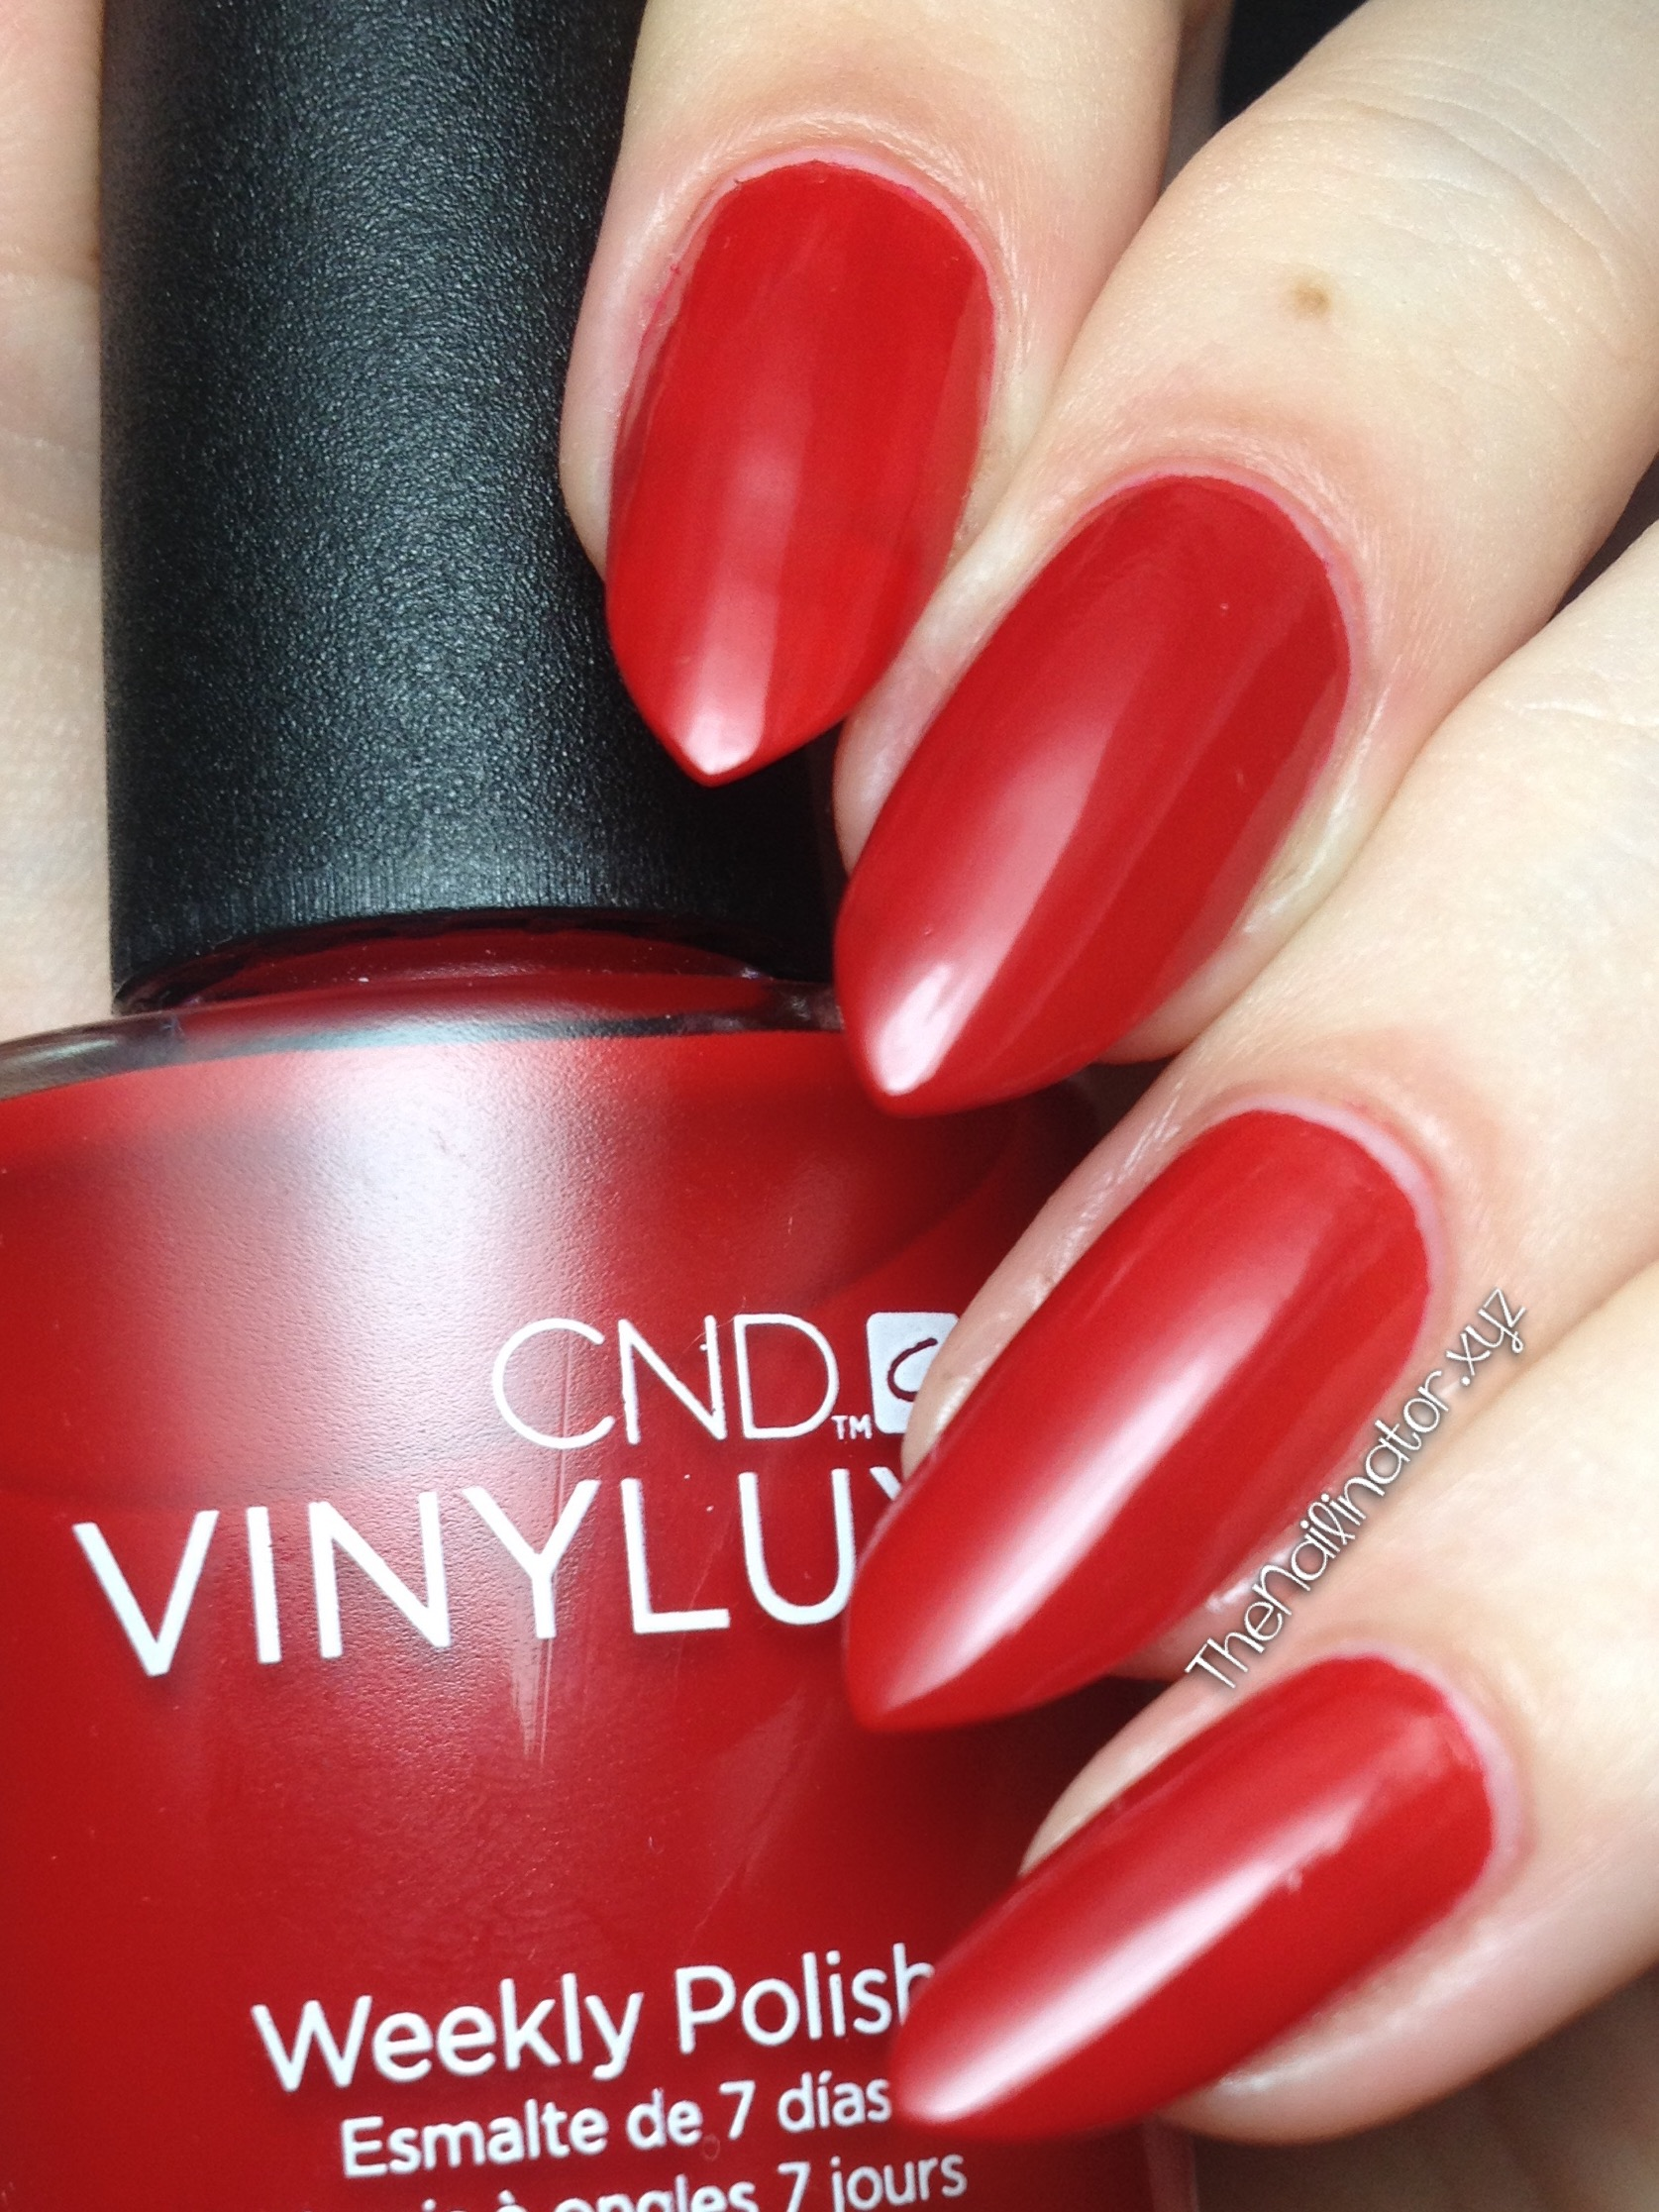 Swatches Of Cnd Vinylux Rouge Red And Rock Royalty The Nailinator